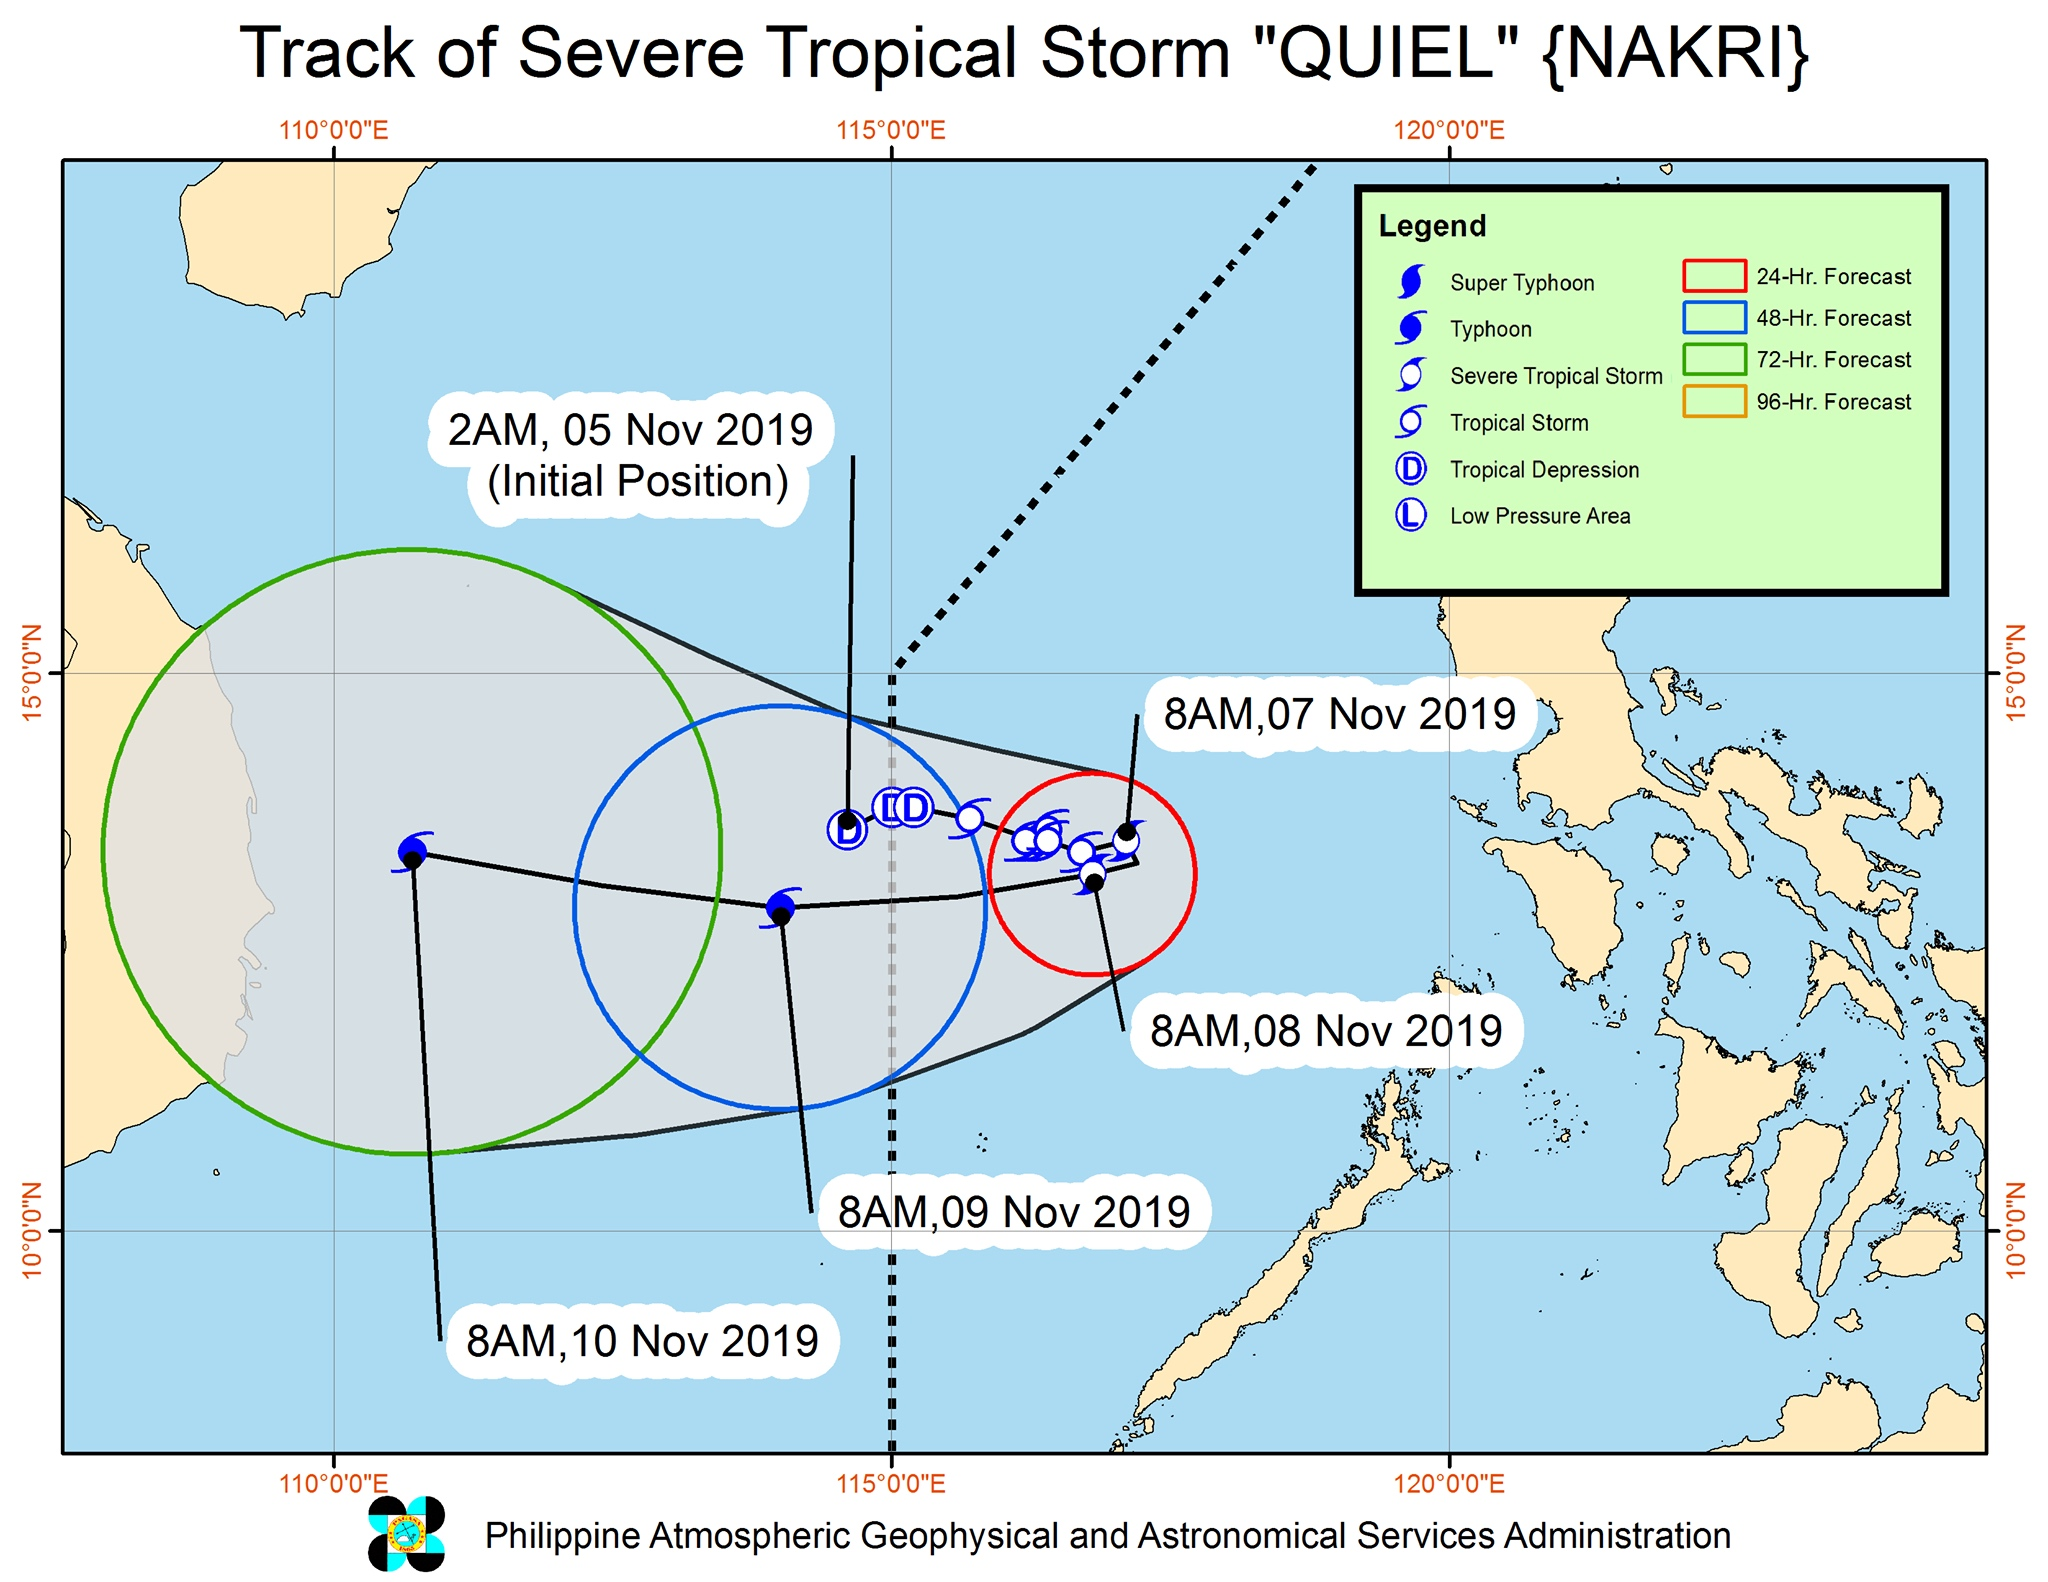 Forecast track of Severe Tropical Storm Quiel (Nakri) as of November 7, 2019, 11 am. Image from PAGASA